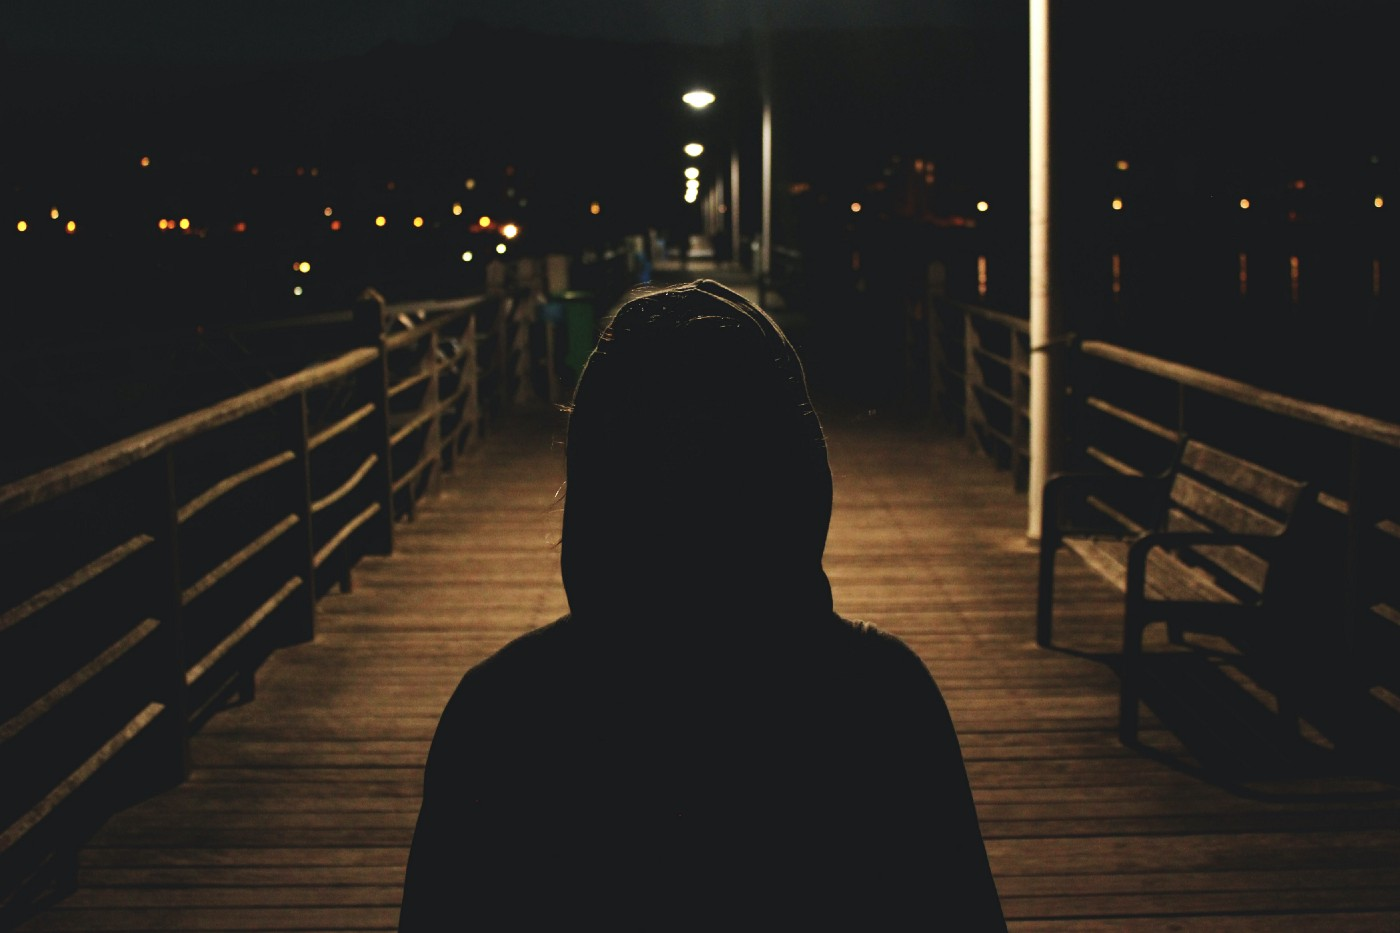 person in black hoodie standing on a bridge at night looking at a large group if people from a distance.